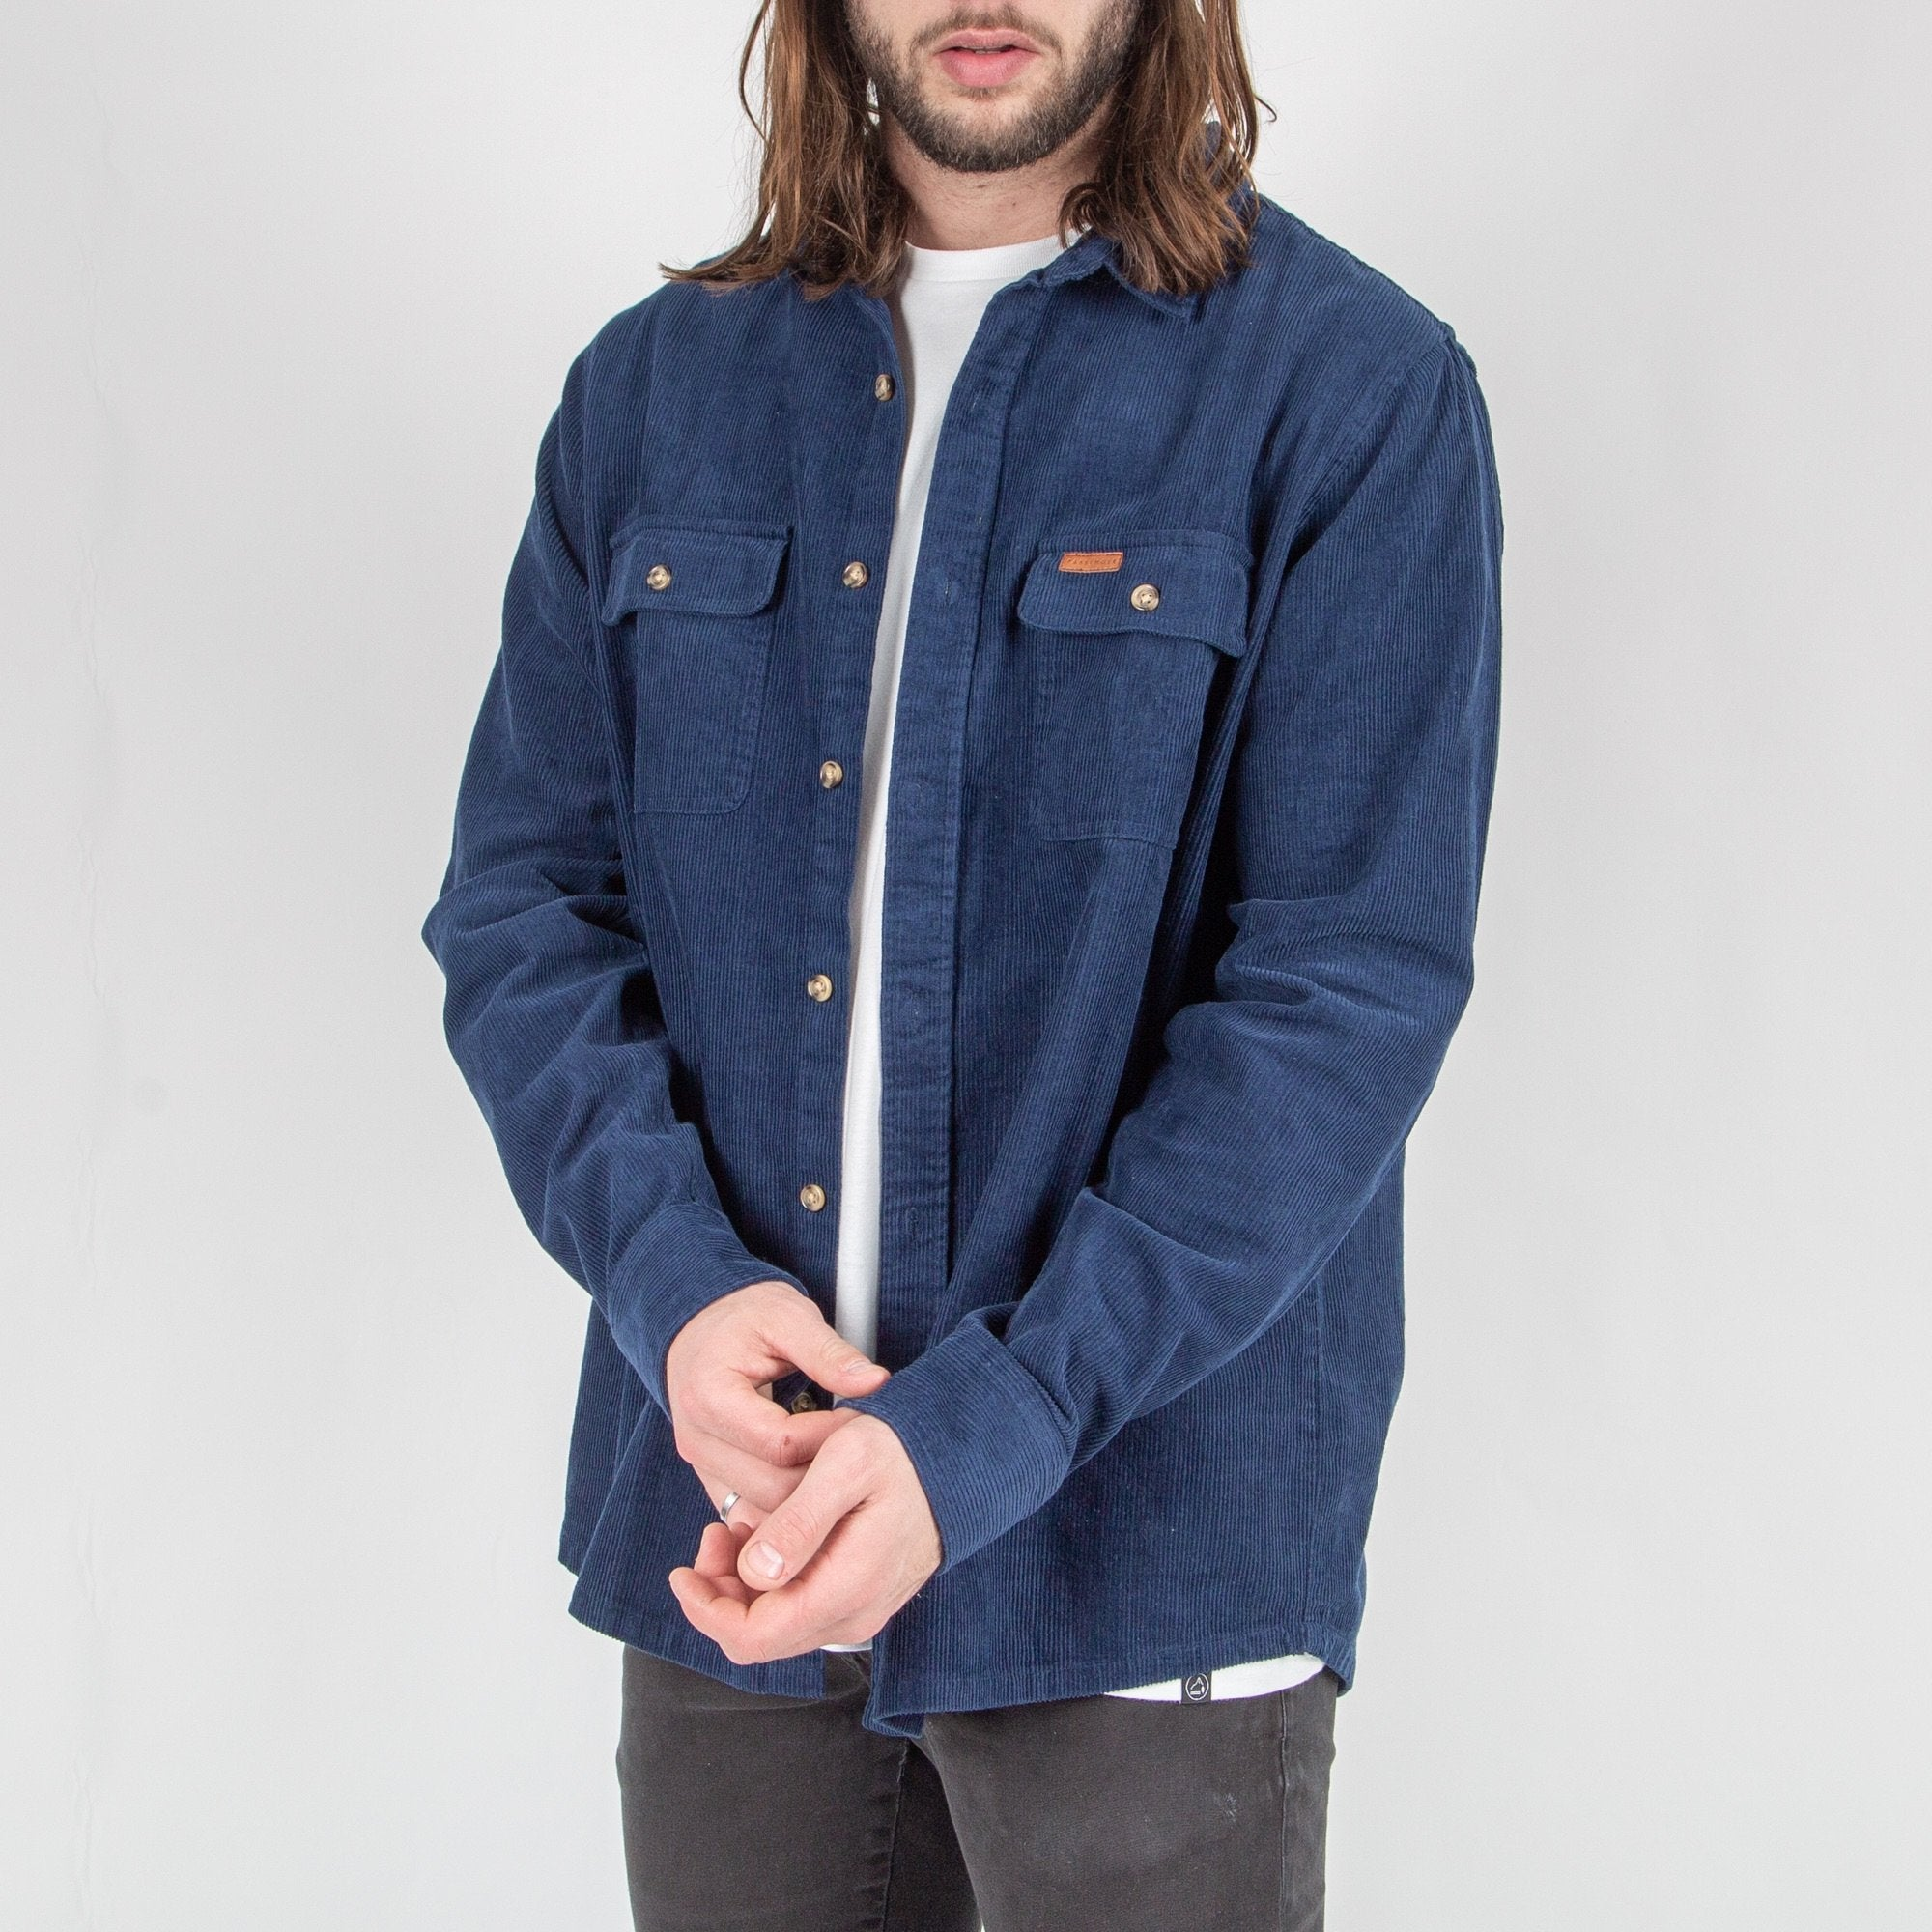 Backcountry Cord Shirt - Dark Denim image 4